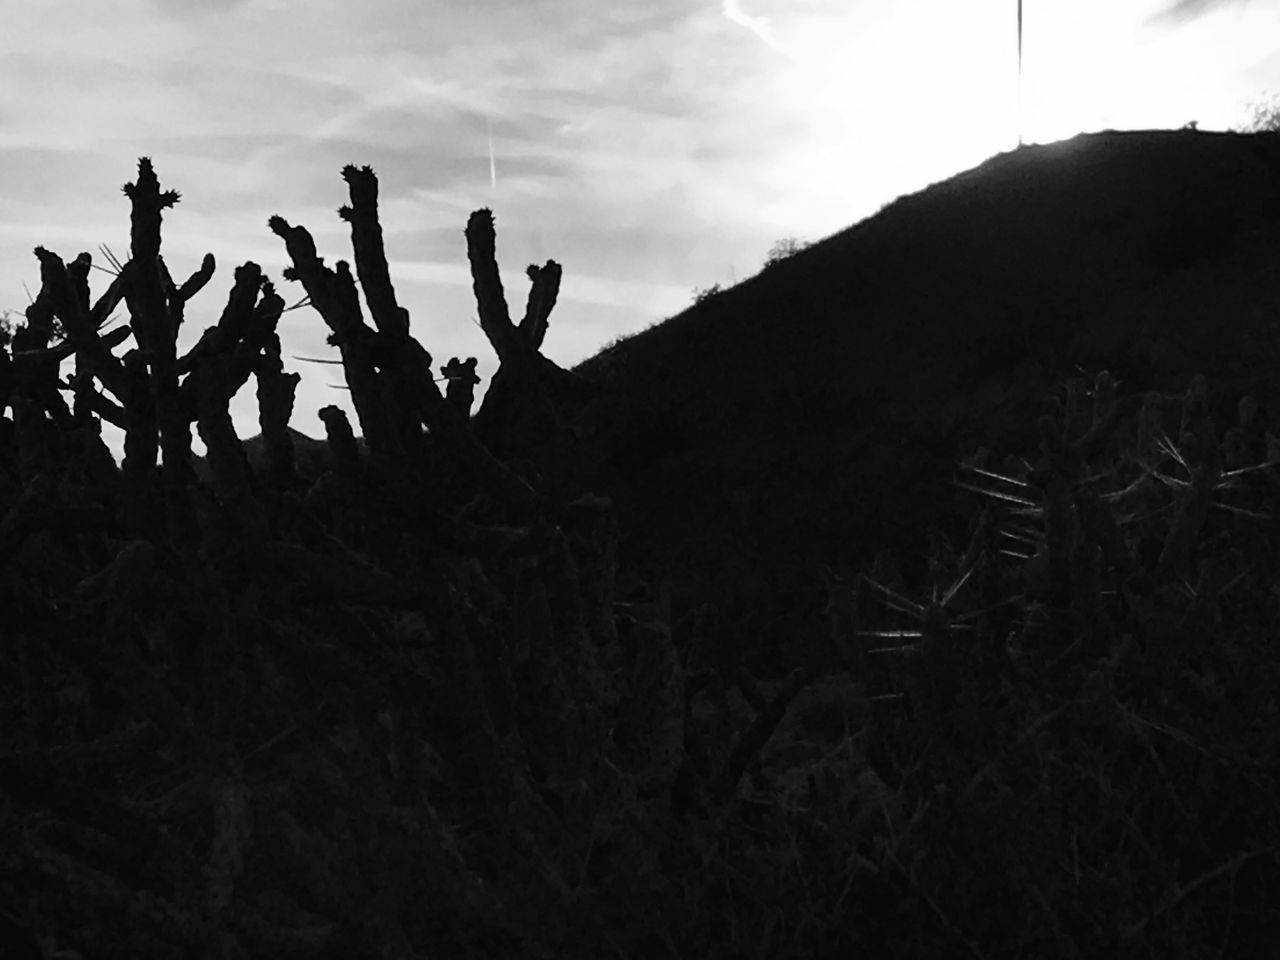 Growth Outdoors Nature Blackandwhitephotography Cactus Collection Desert Flora EyeEm Nature Lover Close-up Contrast/exposure Messing Around